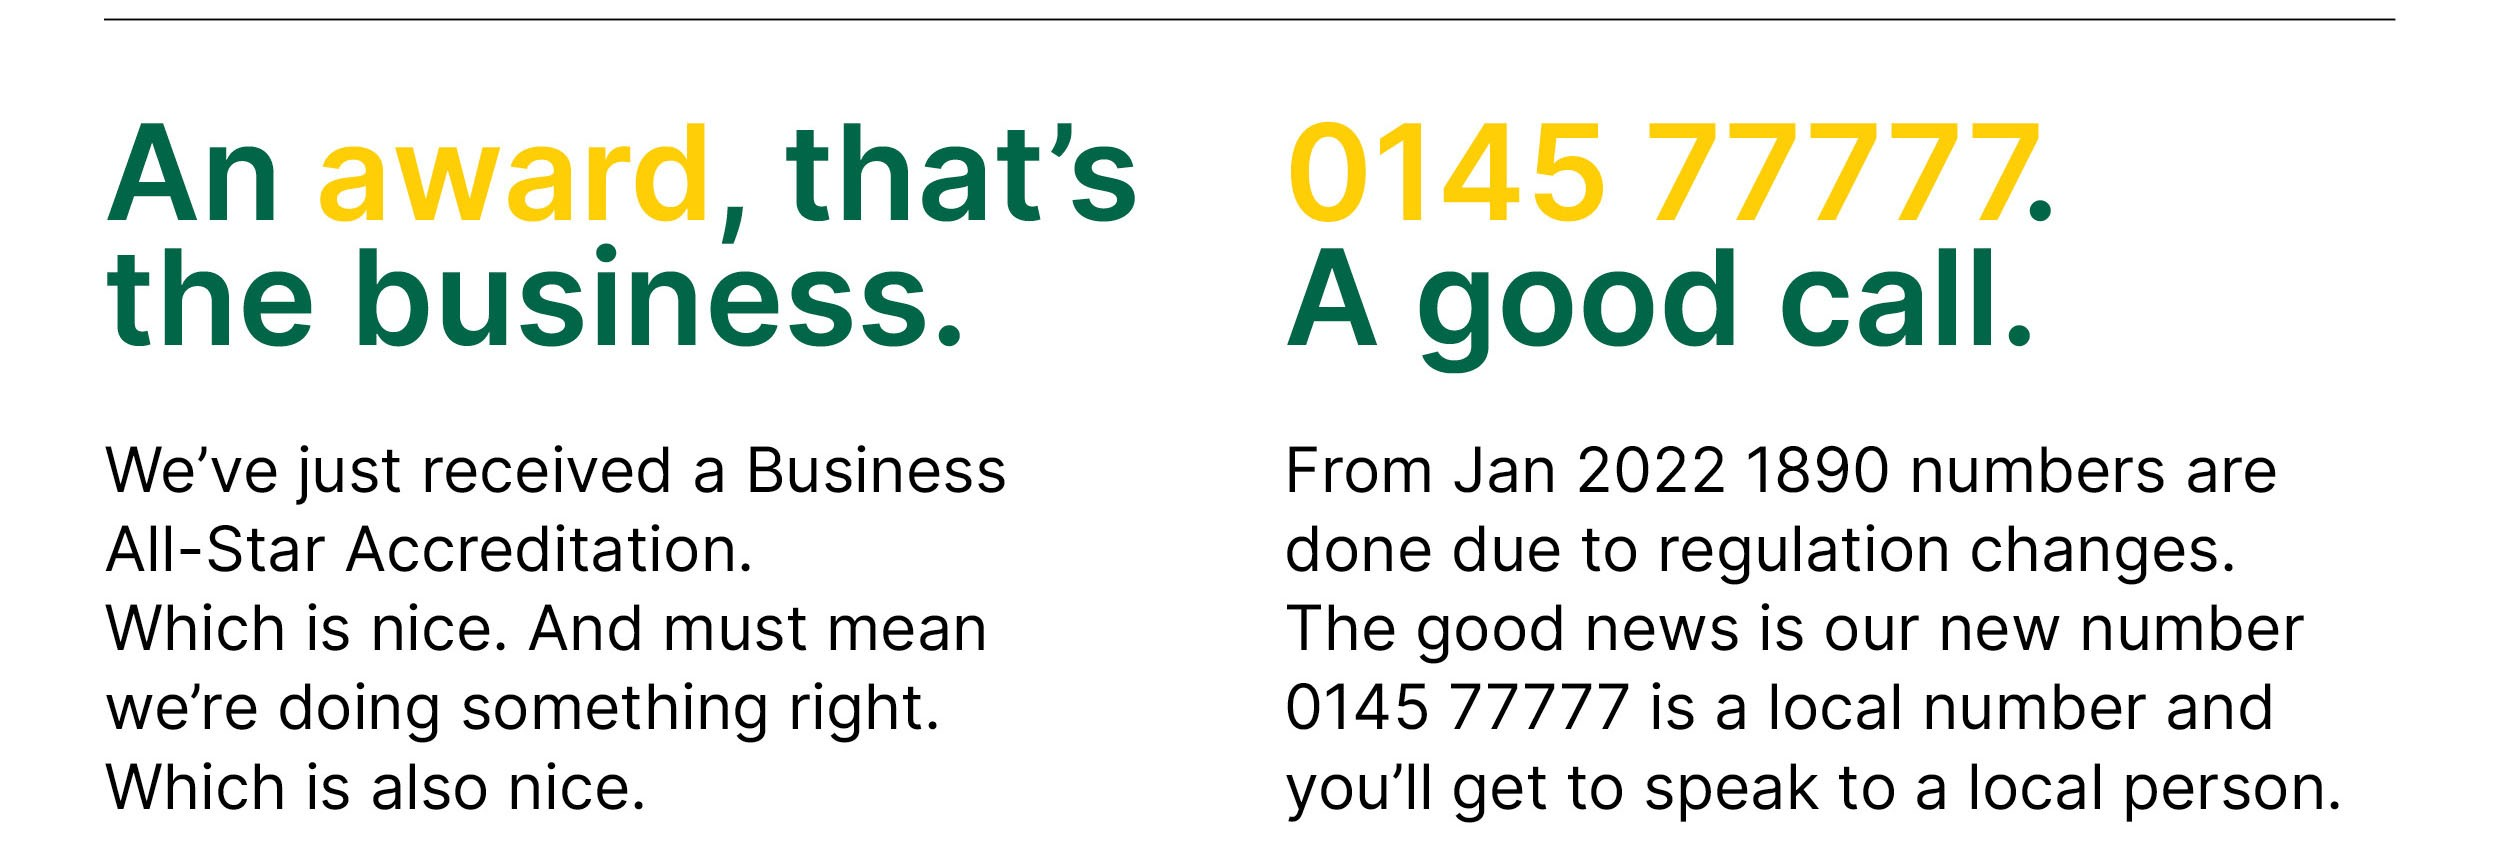 Information on a business award and an update to 1890 phone numbers